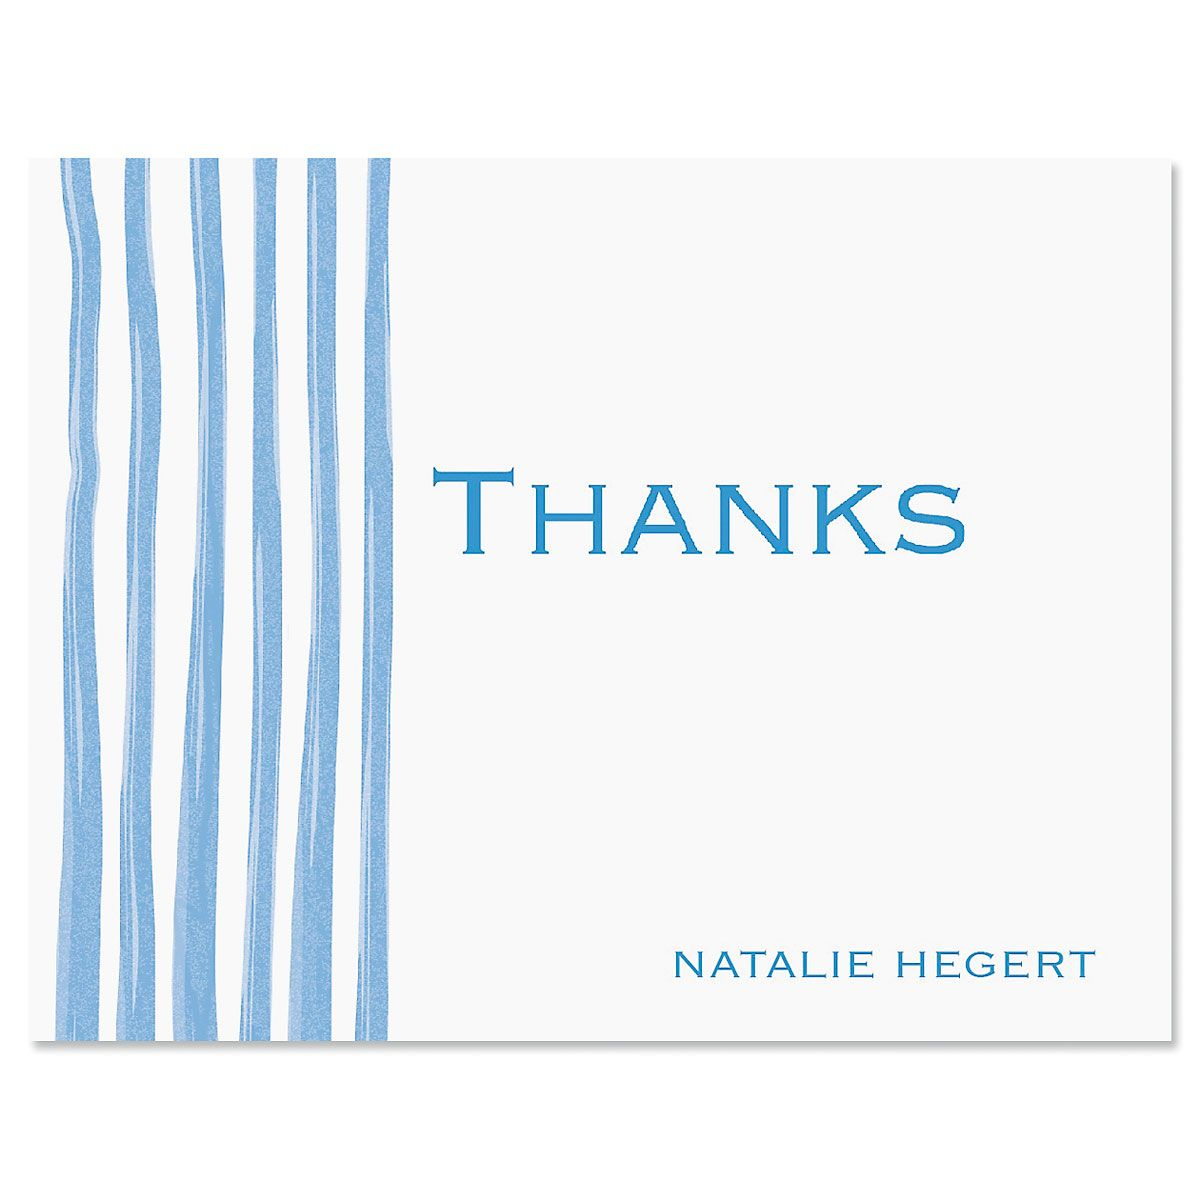 Sheer Delight Thank You Card-Blue-609279B